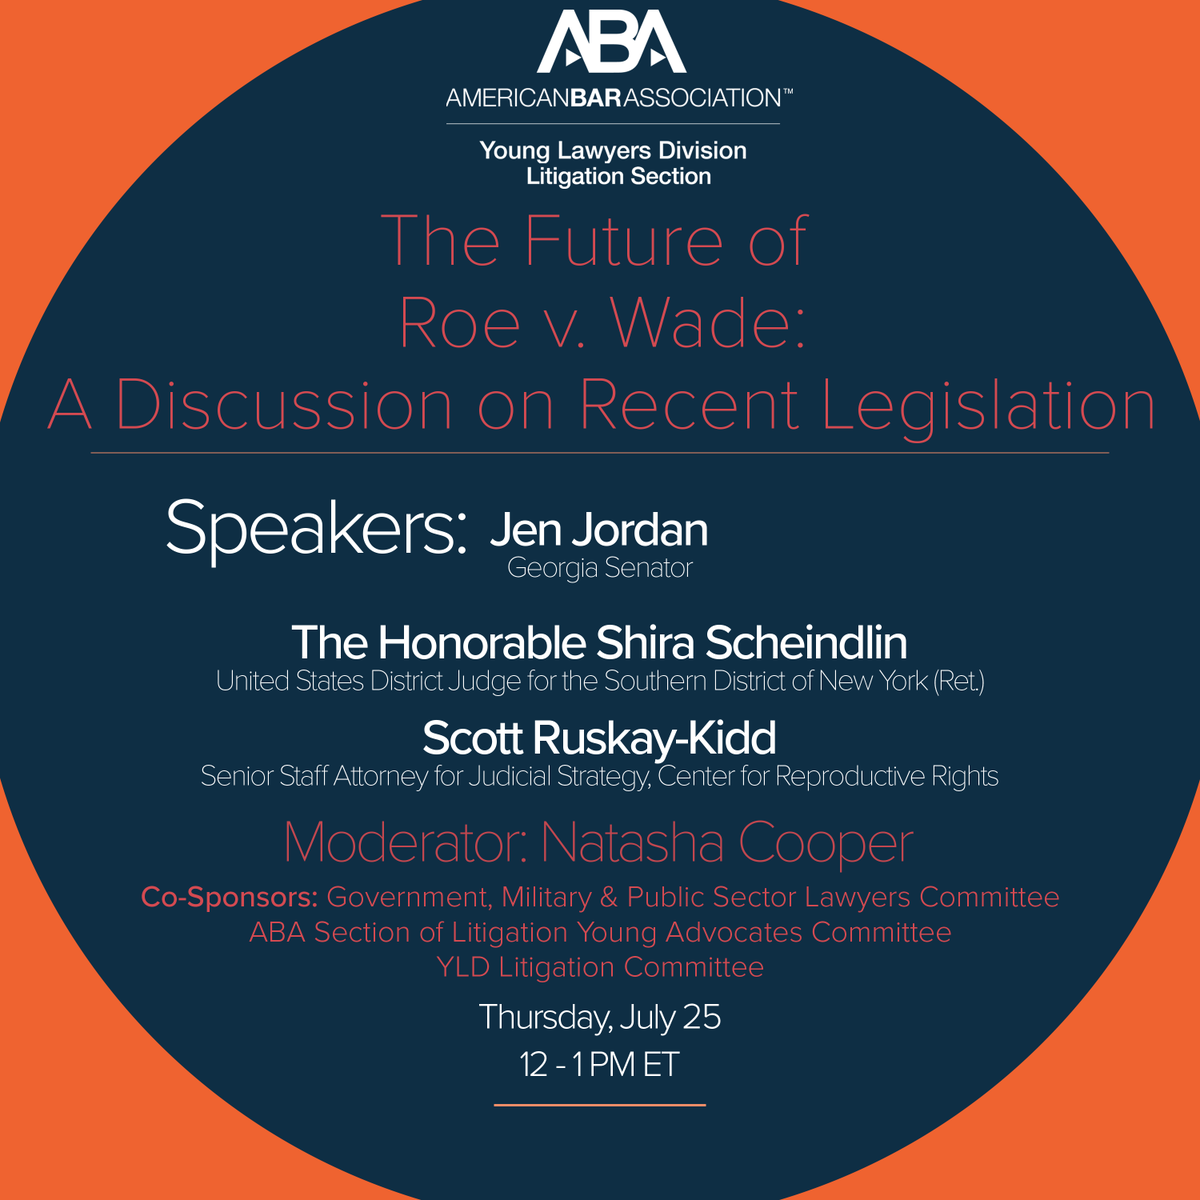 The Future of Roe v. Wade: A Discussion on Recent Legislation. July 25, 12 pm. #webinar #RoevWade   Register:  https://www. americanbar.org/groups/young_l awyers/events_cle/webinar_replay/future-of-roe-v-wade-discussion-on-recent-legislation/  … <br>http://pic.twitter.com/wOtbSm2MQ1